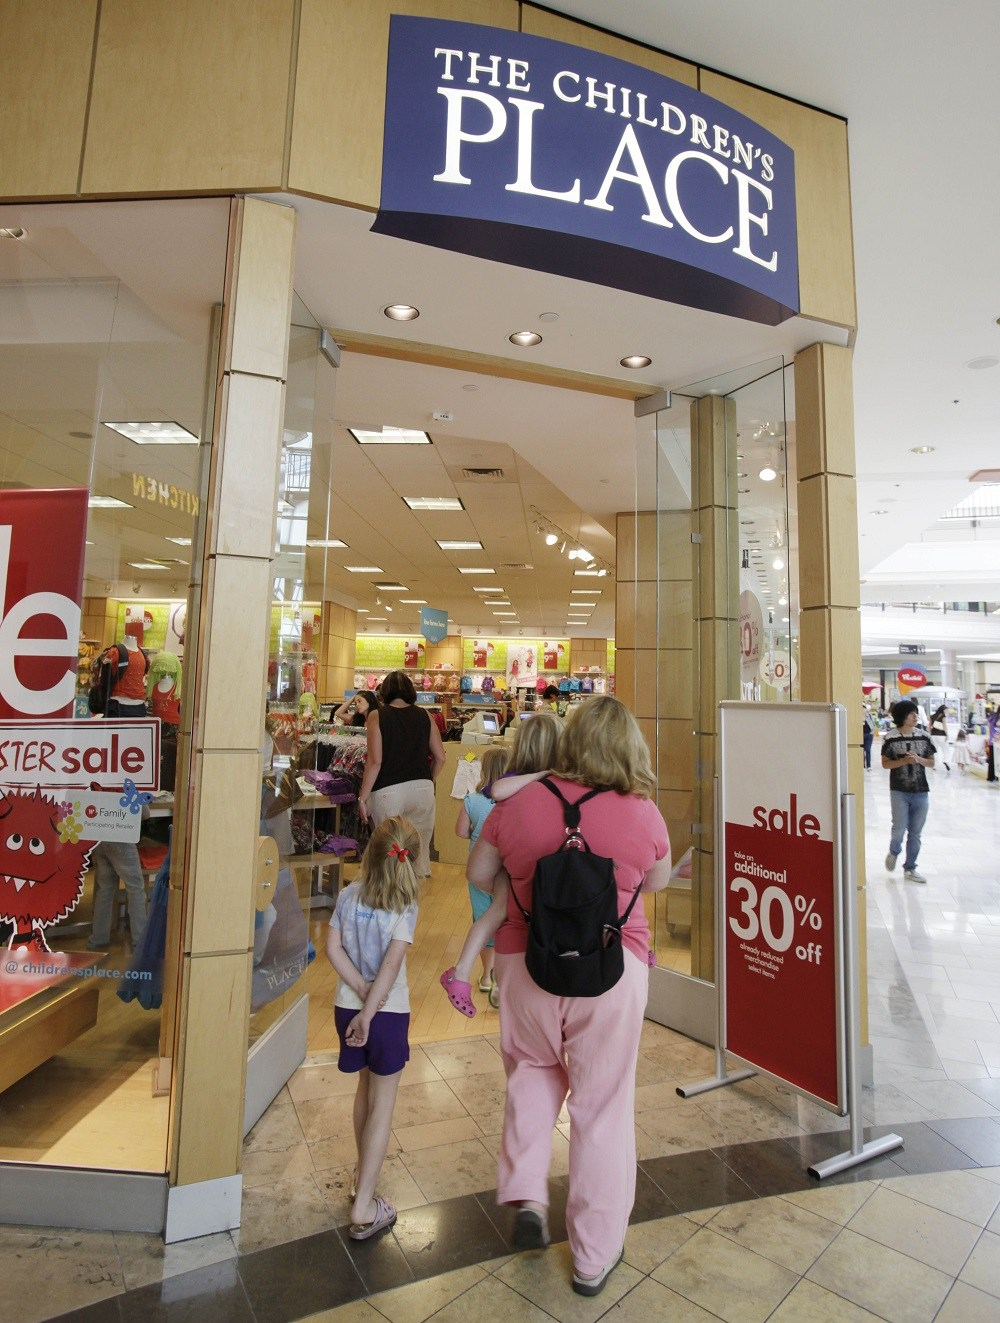 Amid a pandemic-caused net loss and sales falloff in Q2, The Children's Place is seeing an upside from its omnichannel strategy.